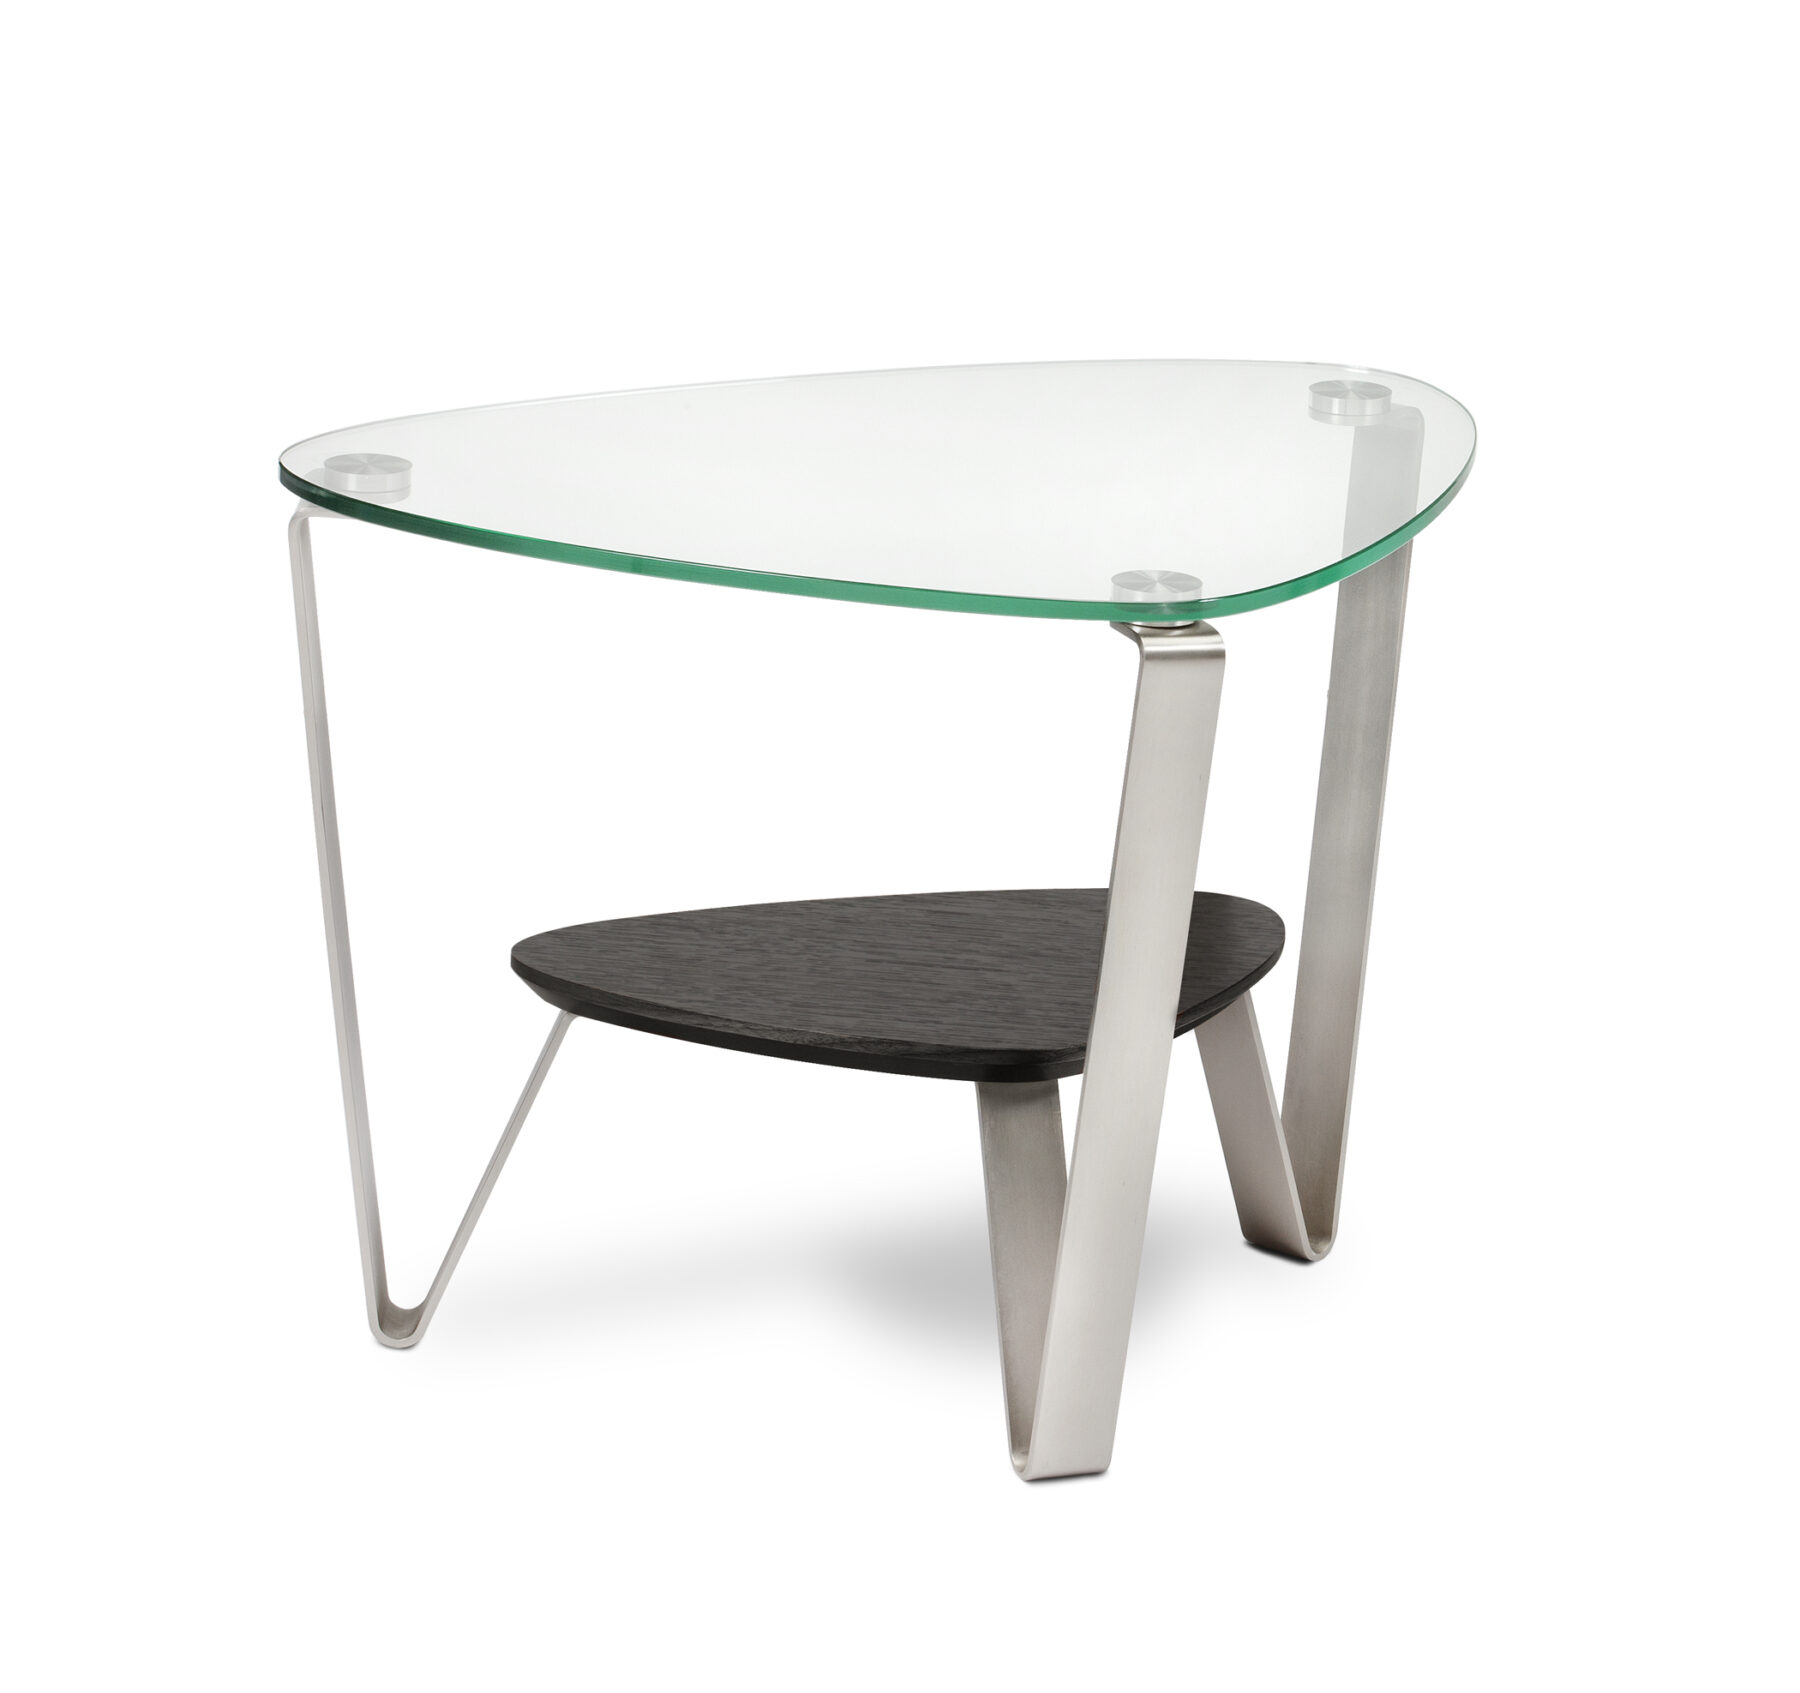 dino-1347-espresso-bdi-modern-coffee-table-1